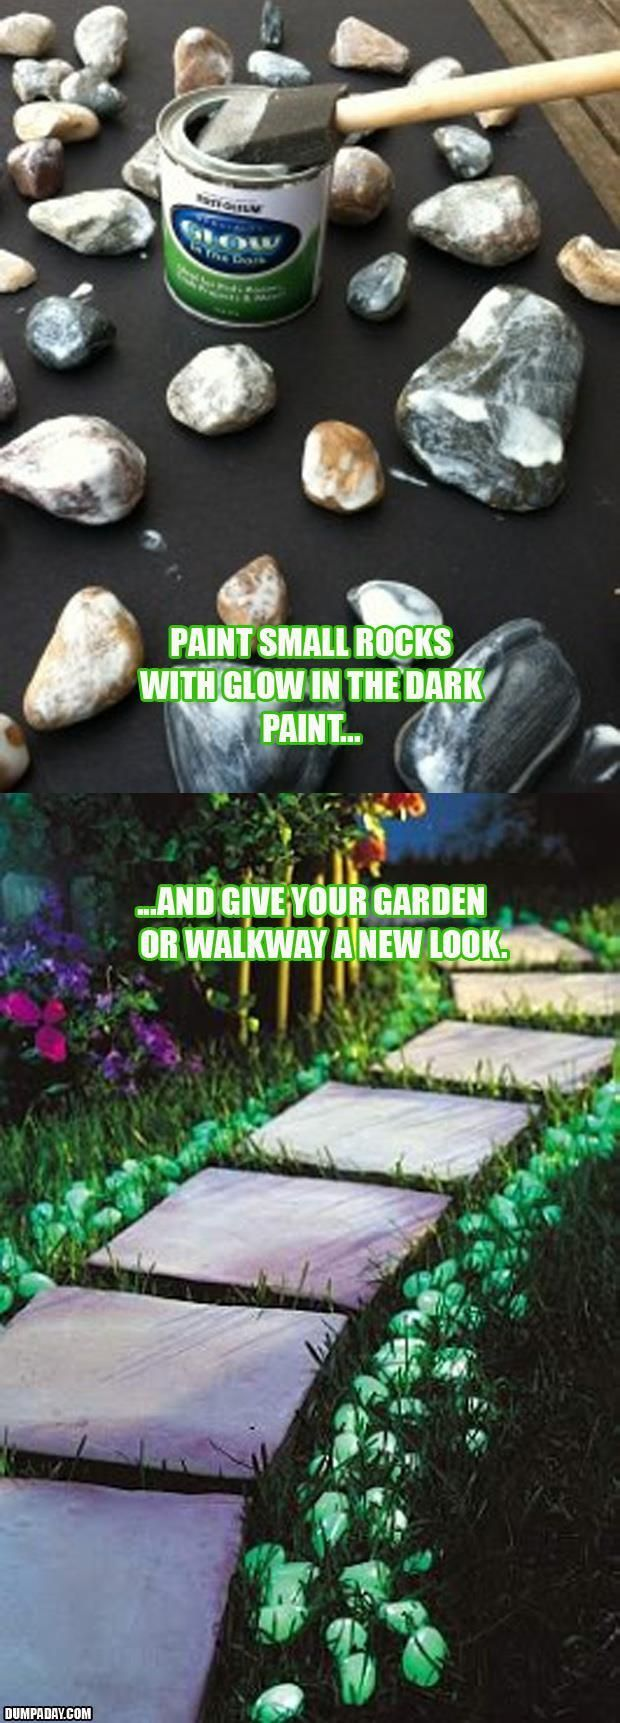 Glow in the dark paint is so practical for so many reasons.....paint an old can or two and take it camping to mark your camp site for visitors.....paint handrail so it is easy to find at night.....paint wind chimes, garden tools....the list is as long as your imagination!